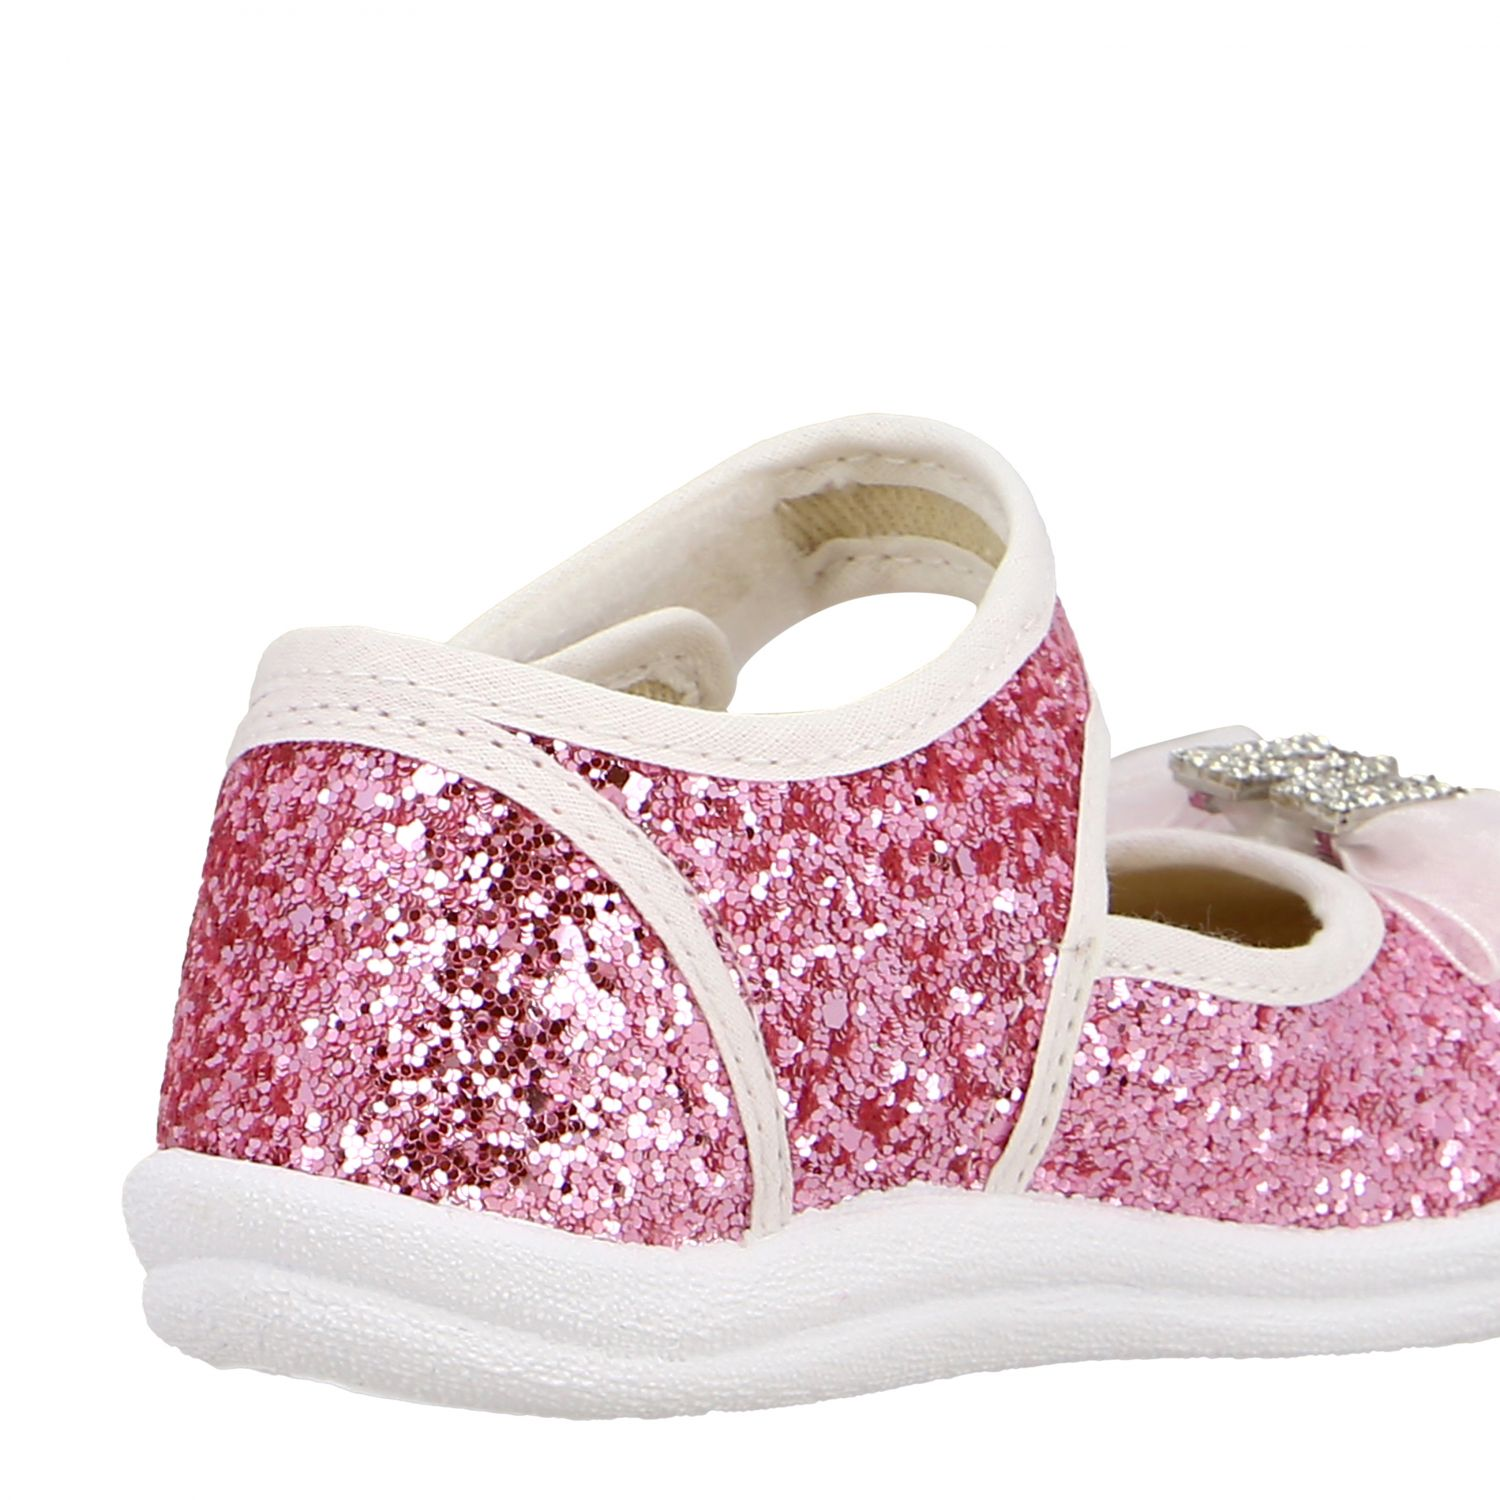 Monnalisa ballet flats in glitter fabric with bow and rhinestones pink 5